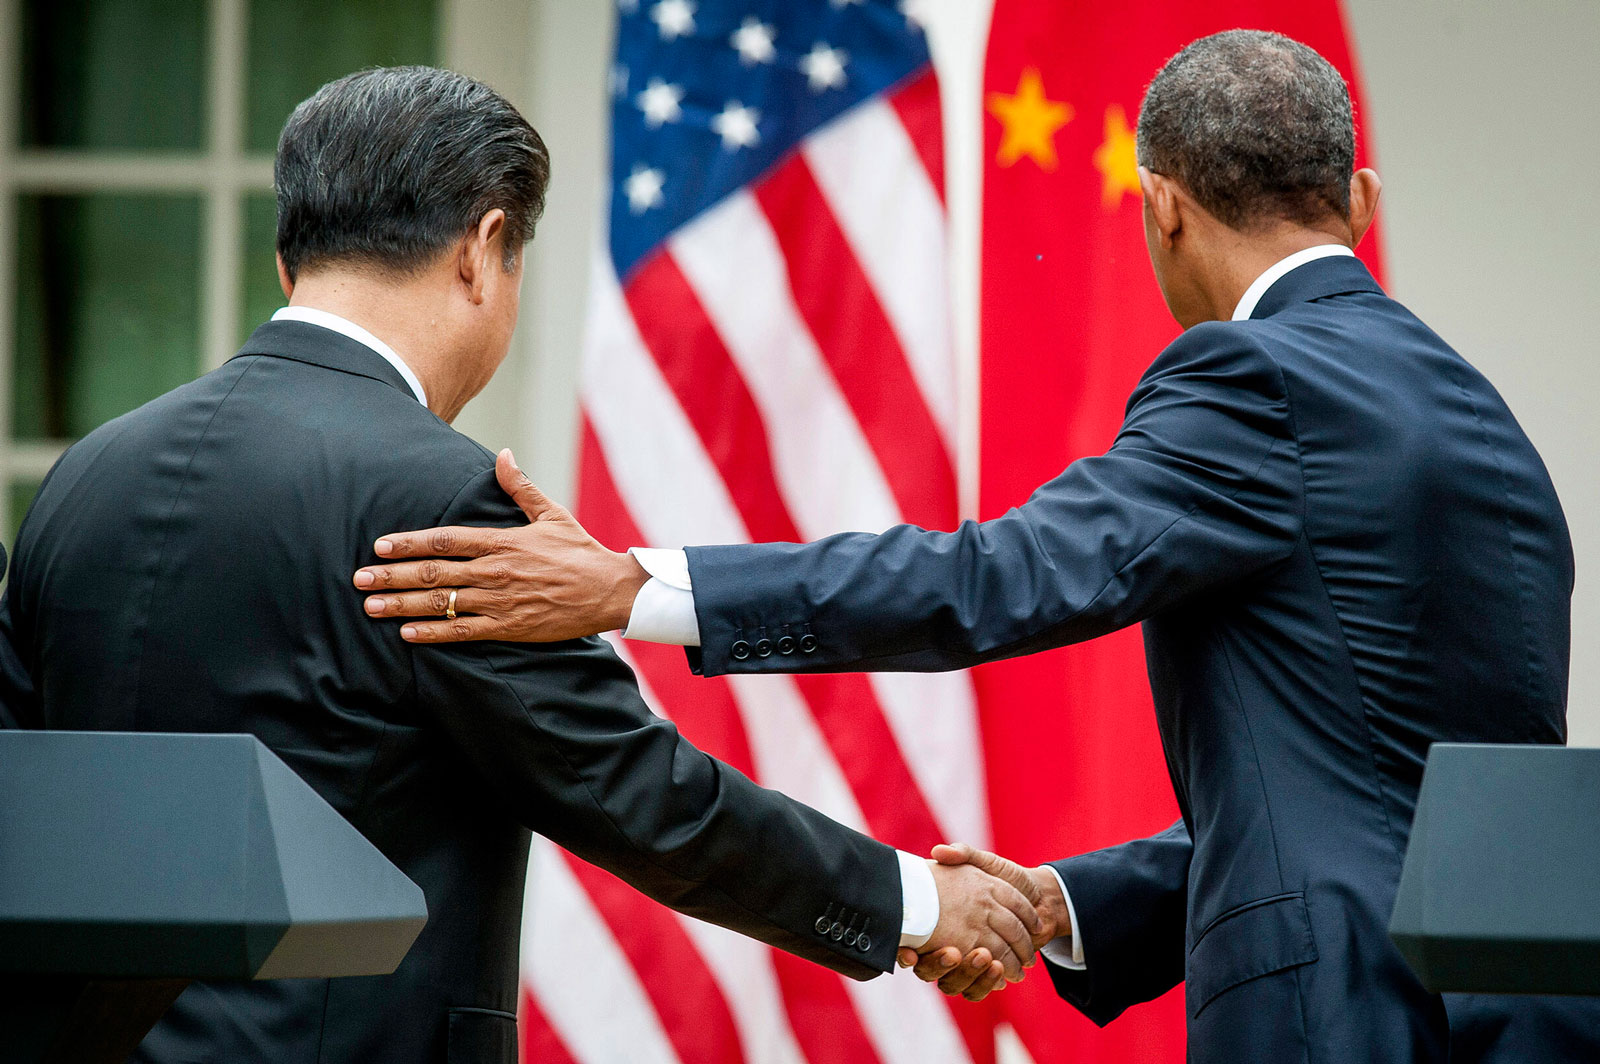 Xi Jinping, China's president shakes hands with U.S. President Barack Obama following a joint news conference in the Rose Garden at the White House